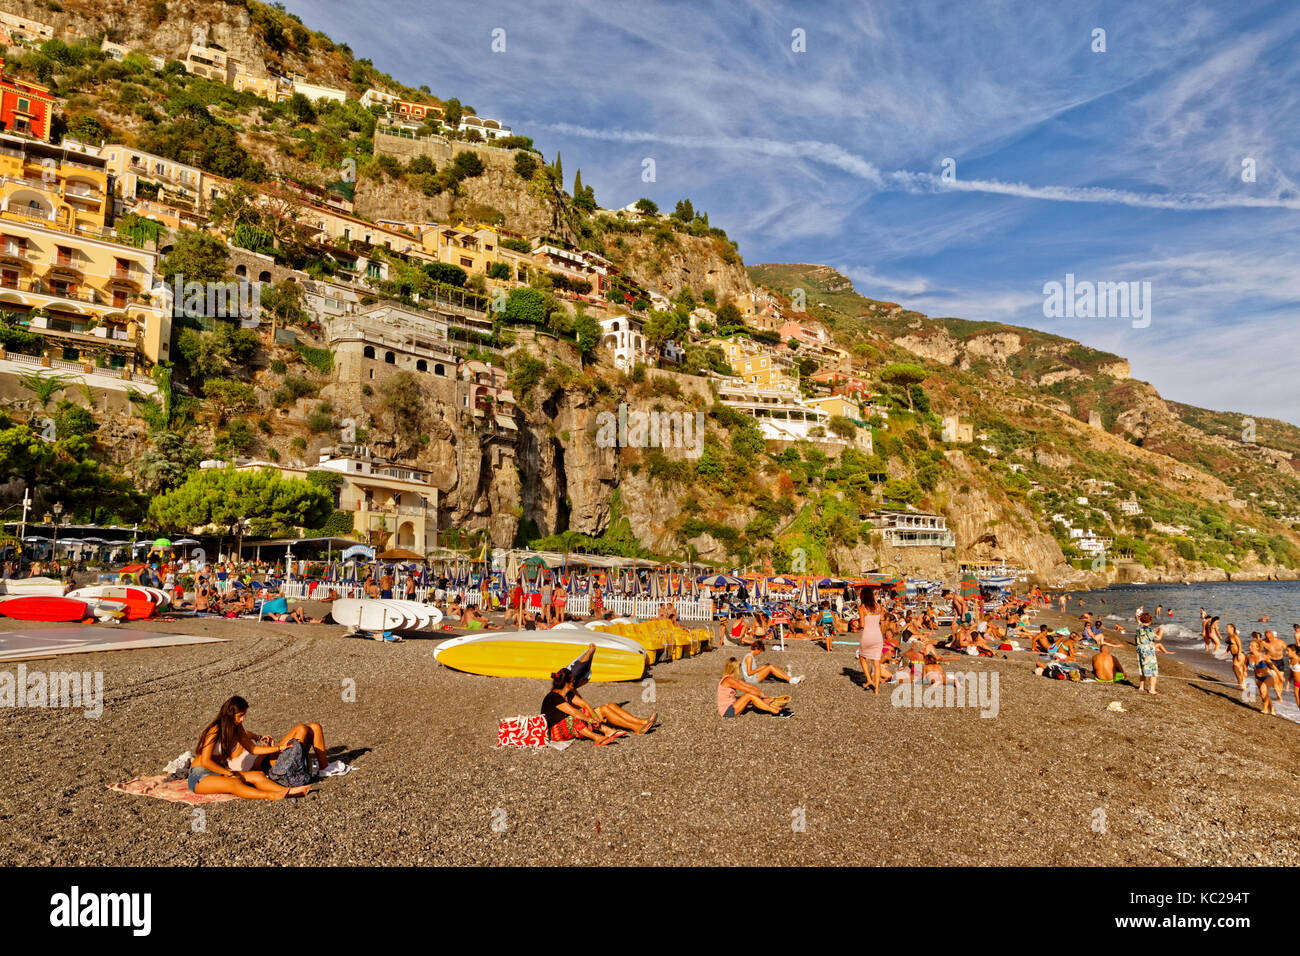 Beach at Positano on the Amalfi Coast in southern Italy. - Stock Image